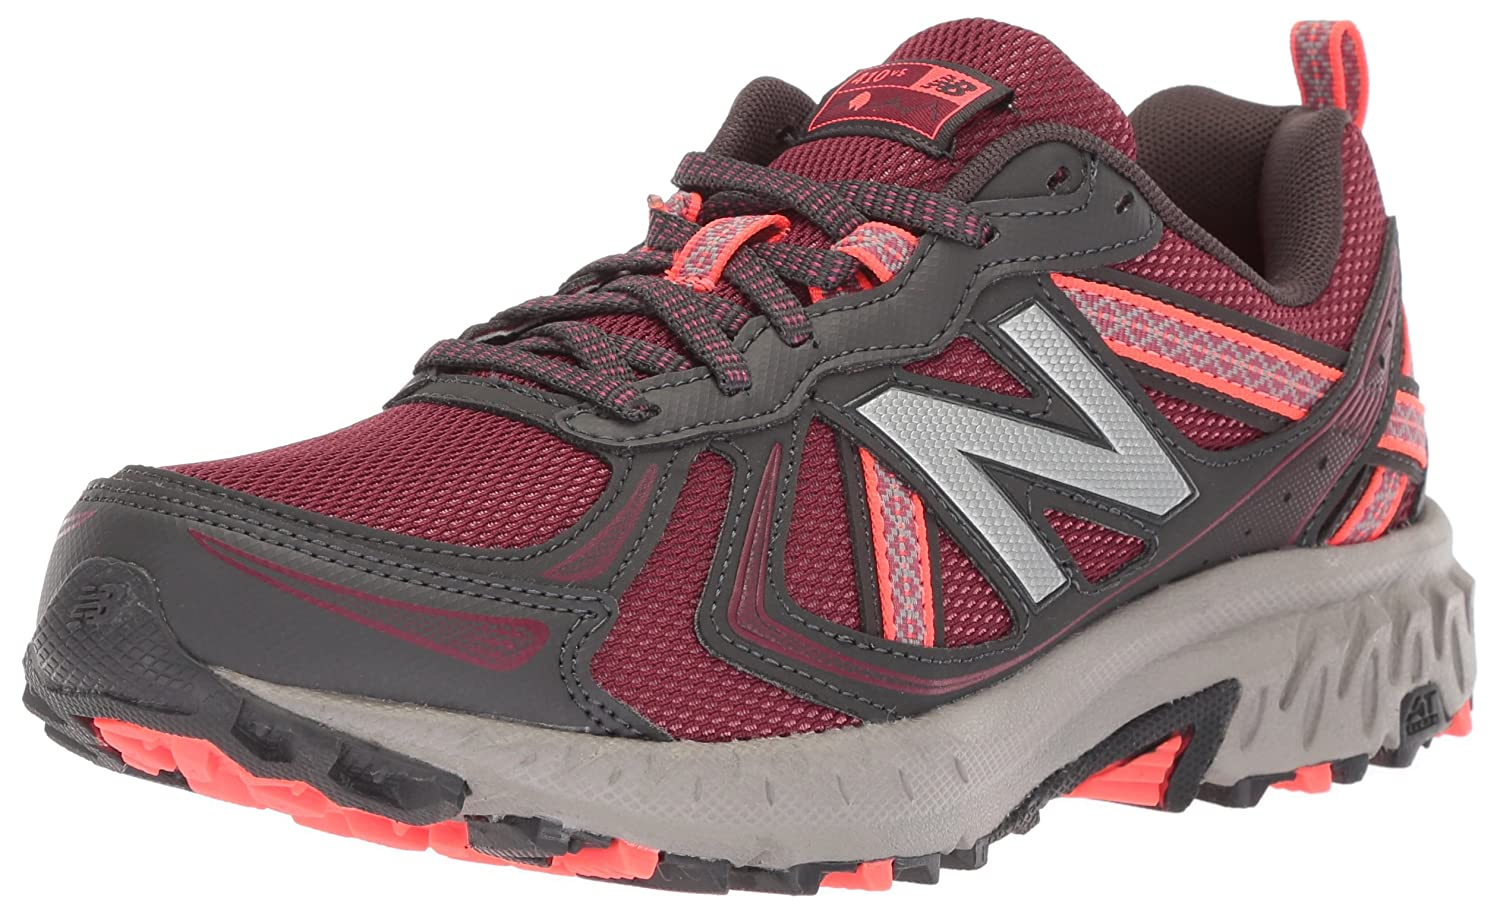 New Balance Women's WT410v5 Cushioning Trail Running Shoe B0751GPZ3M 10 D US|Vortex